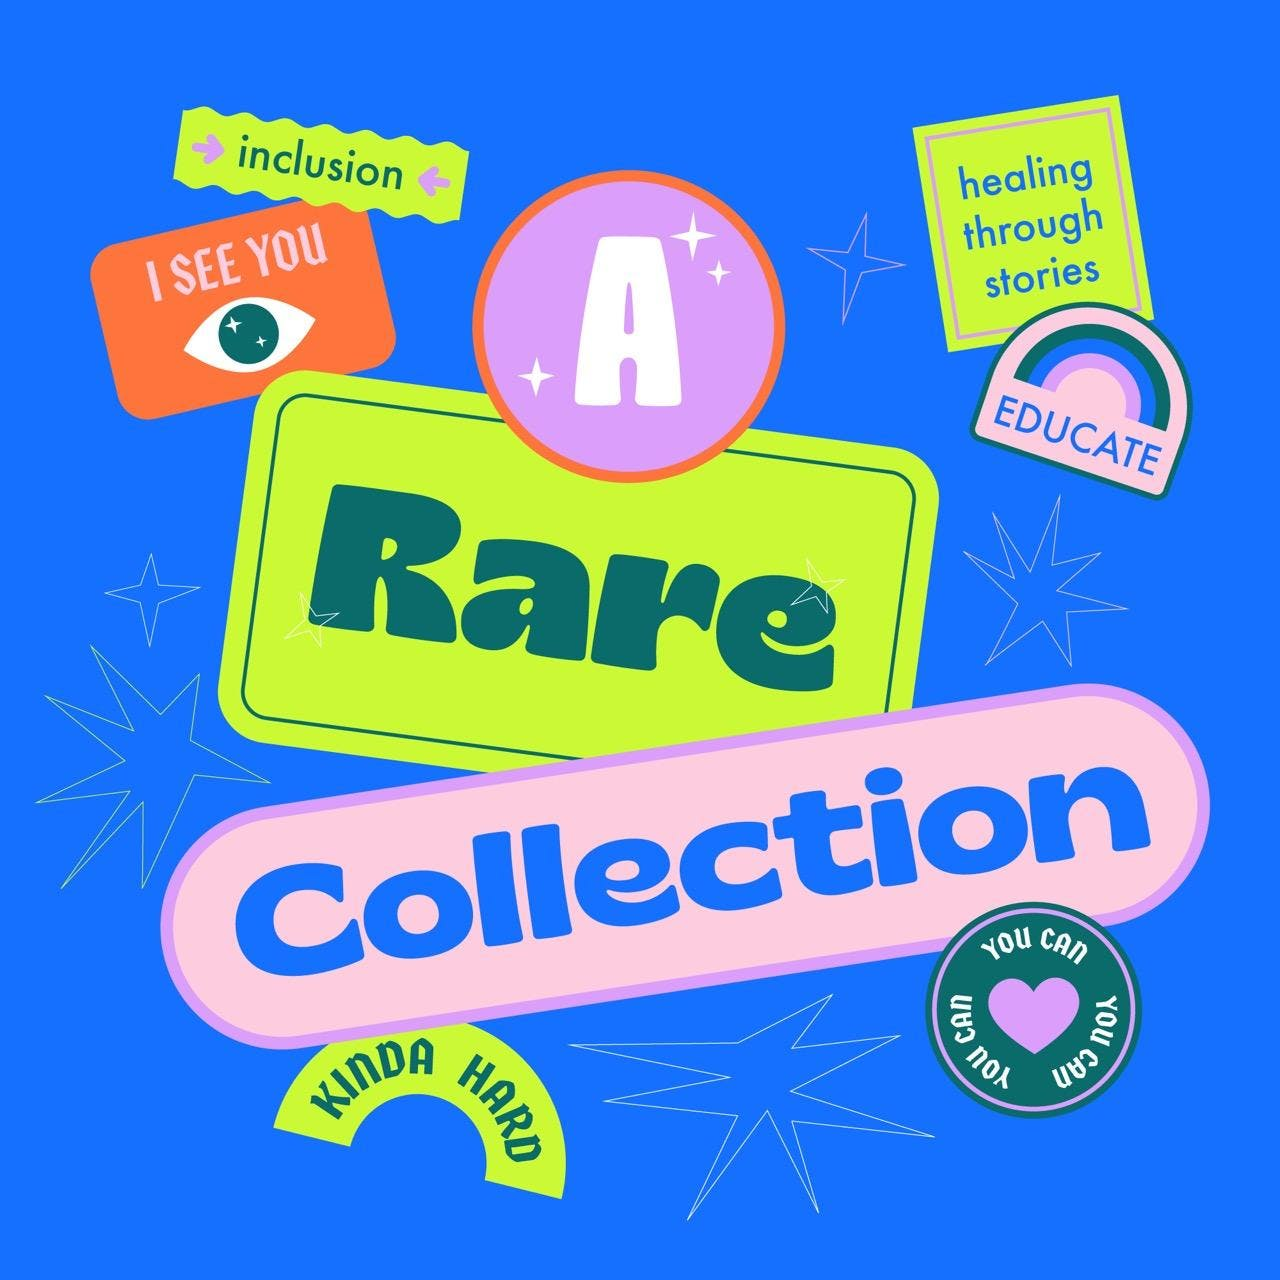 A Rare Collection – Rare Disease Storytelling with Kyle Bryant, Jennifer Siedman, Liz Morris and Ashley Fortney Point